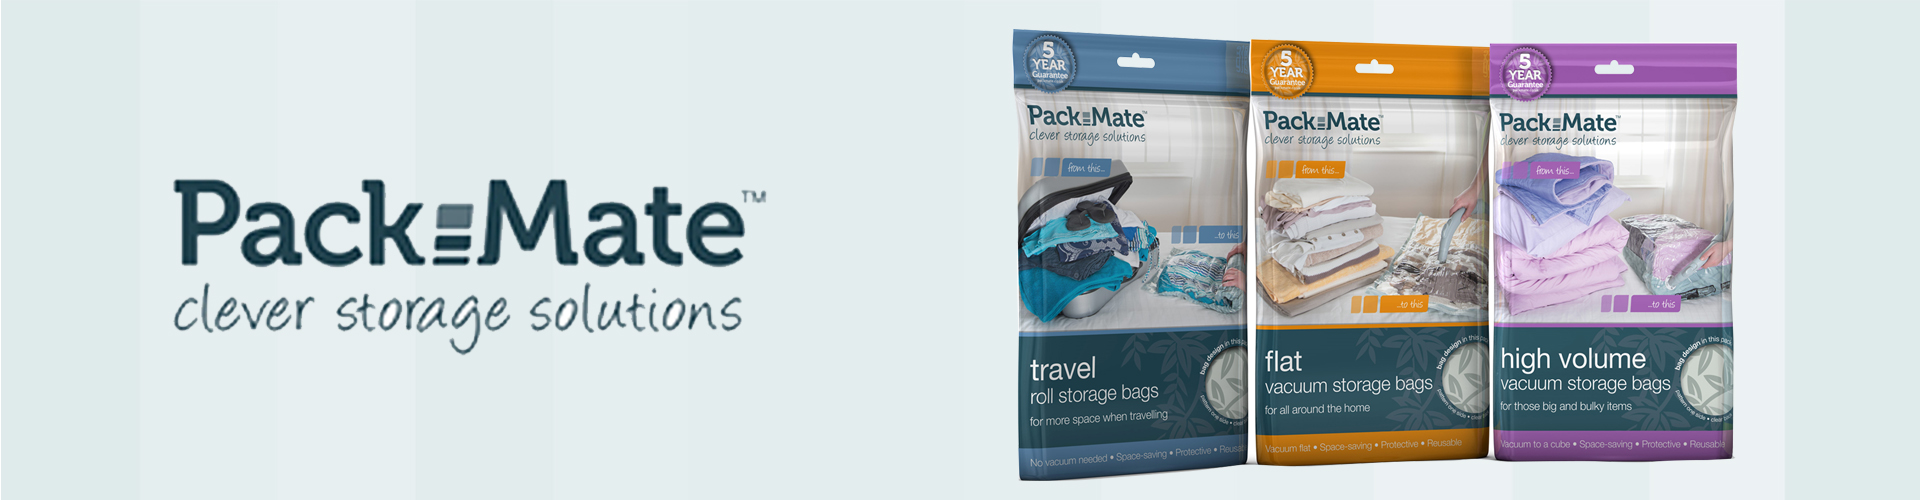 PackMate